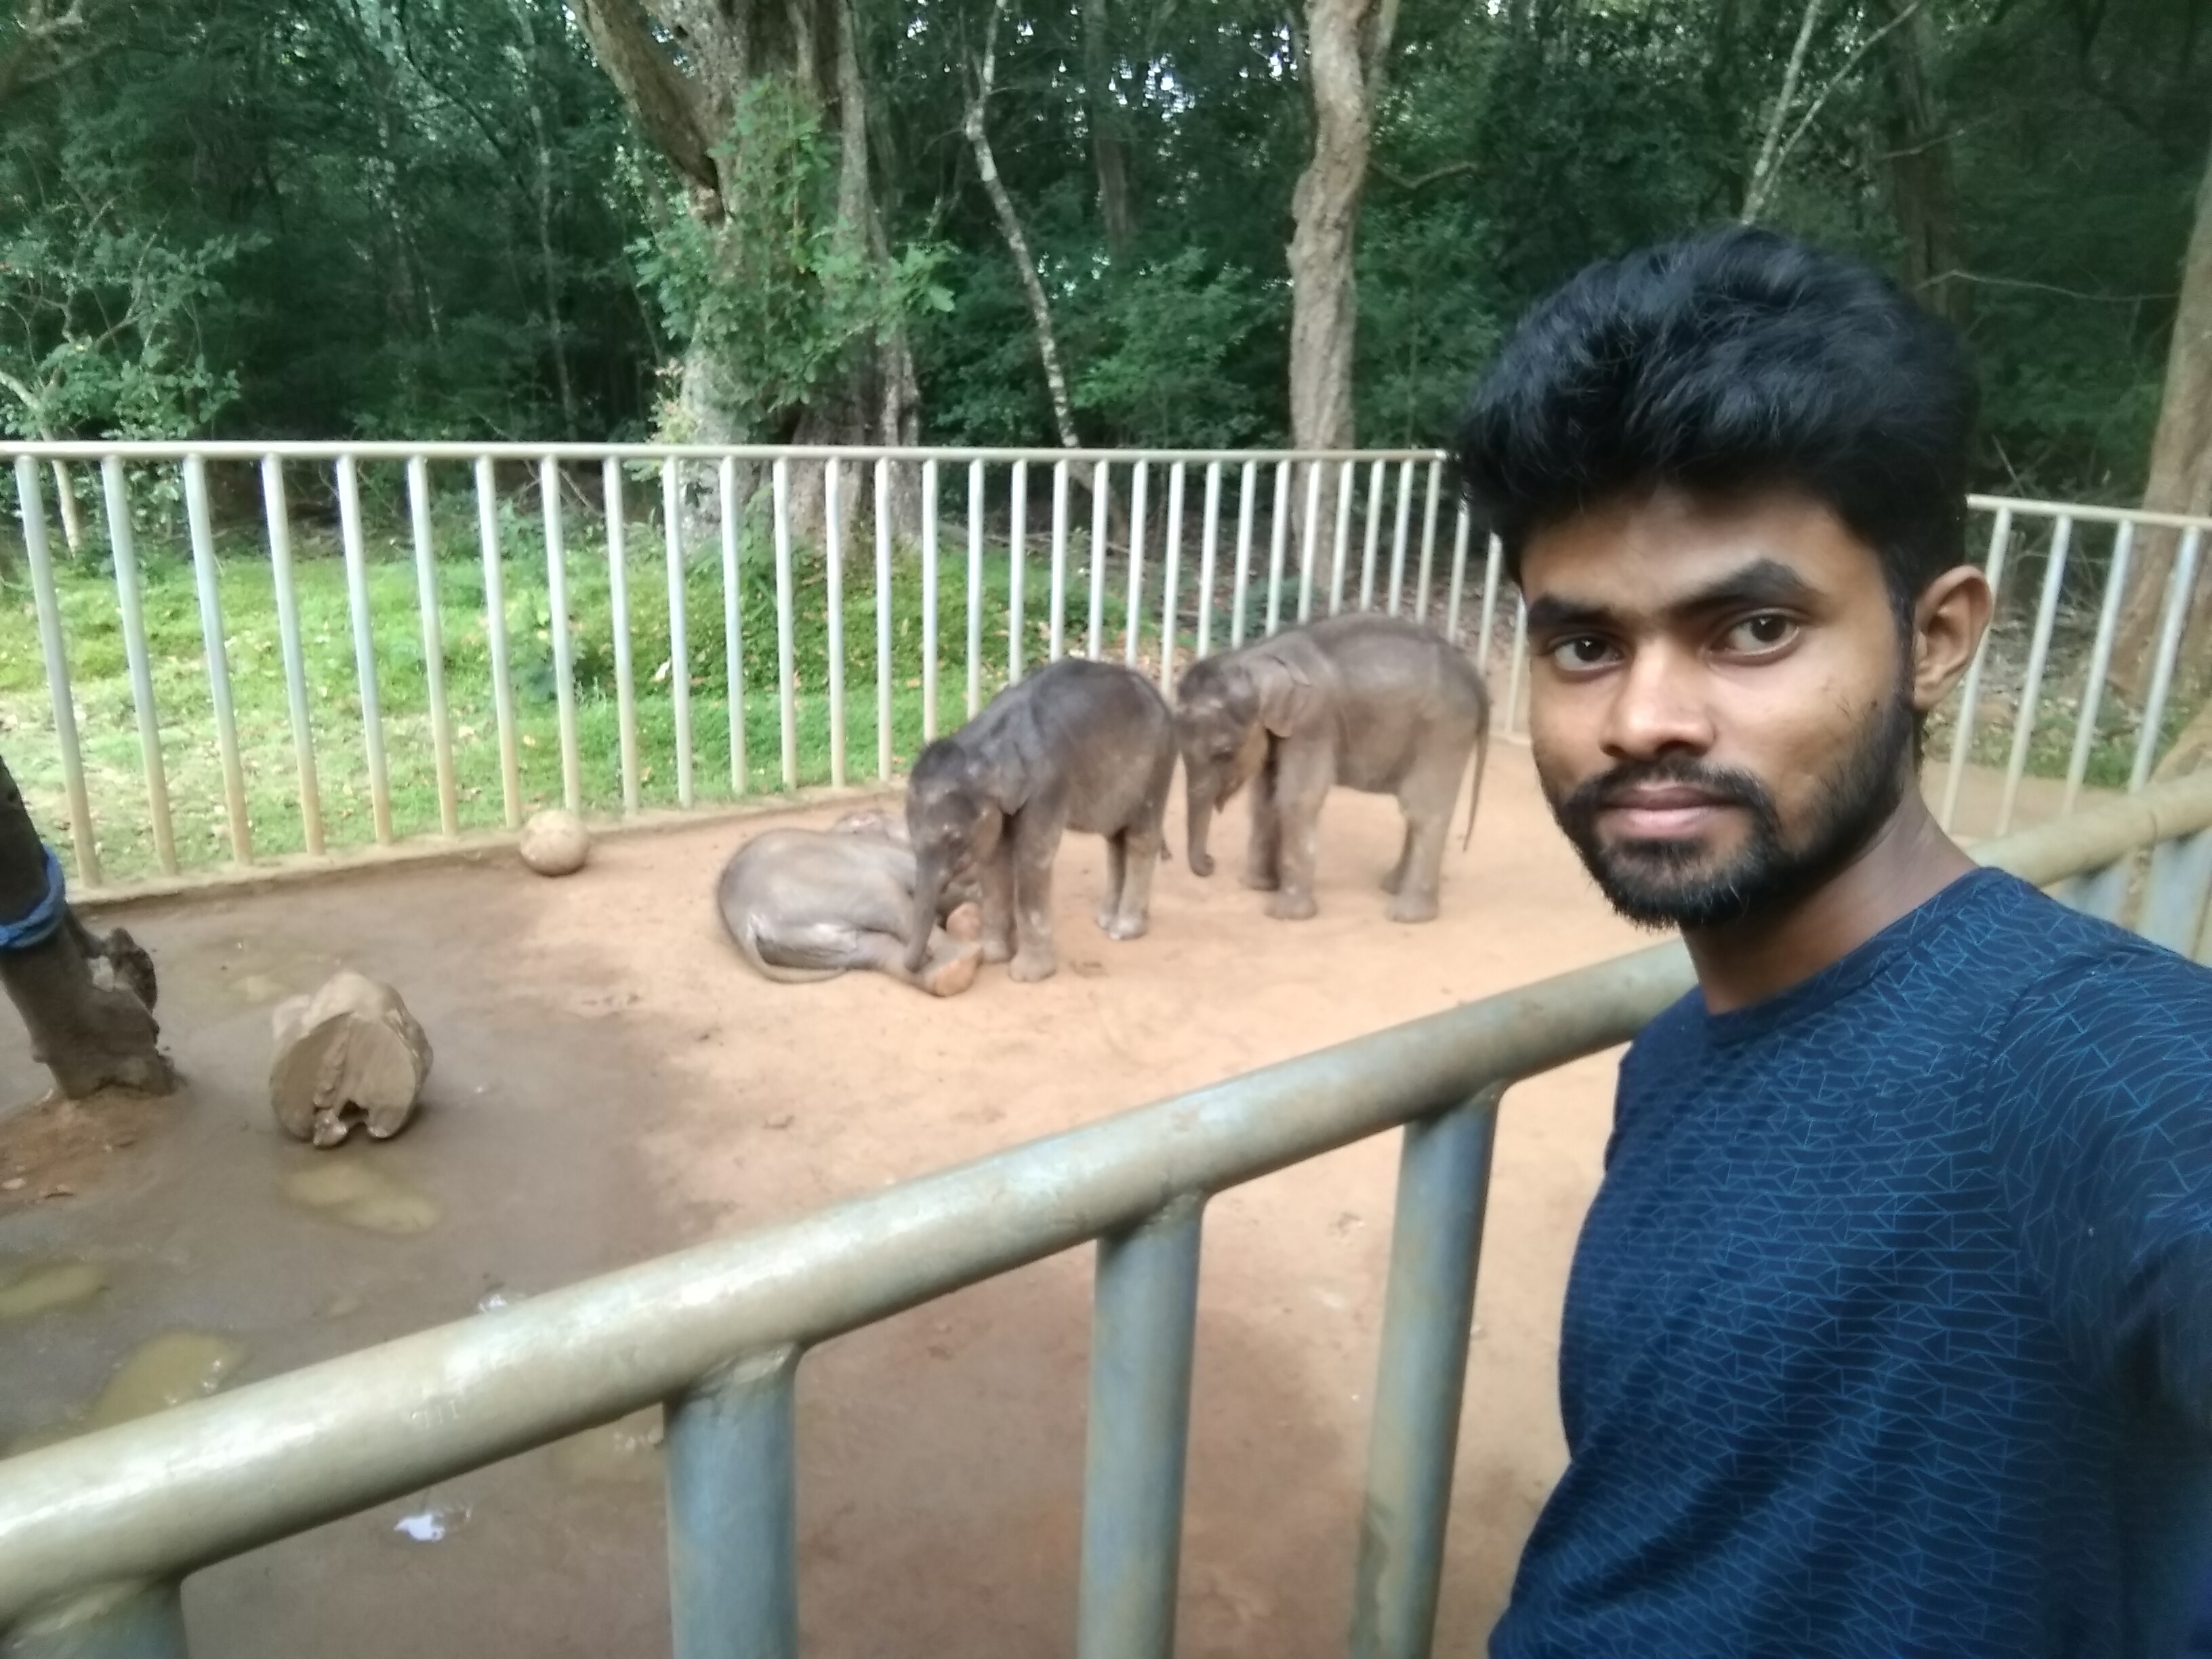 Selfie with baby elephant